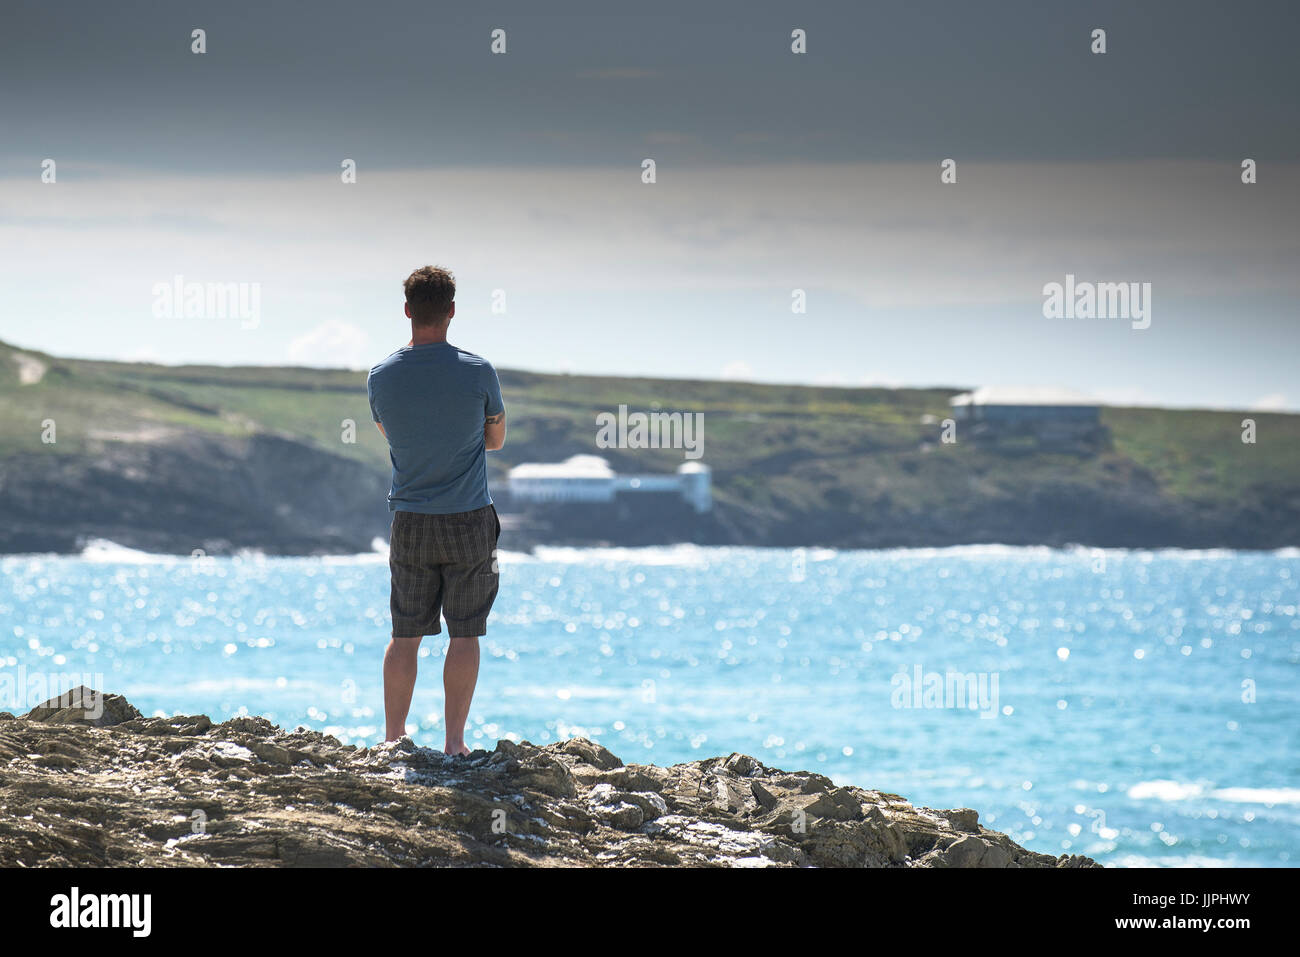 A holidaymaker stands on The Headland in Newquay looking out to sea. - Stock Image